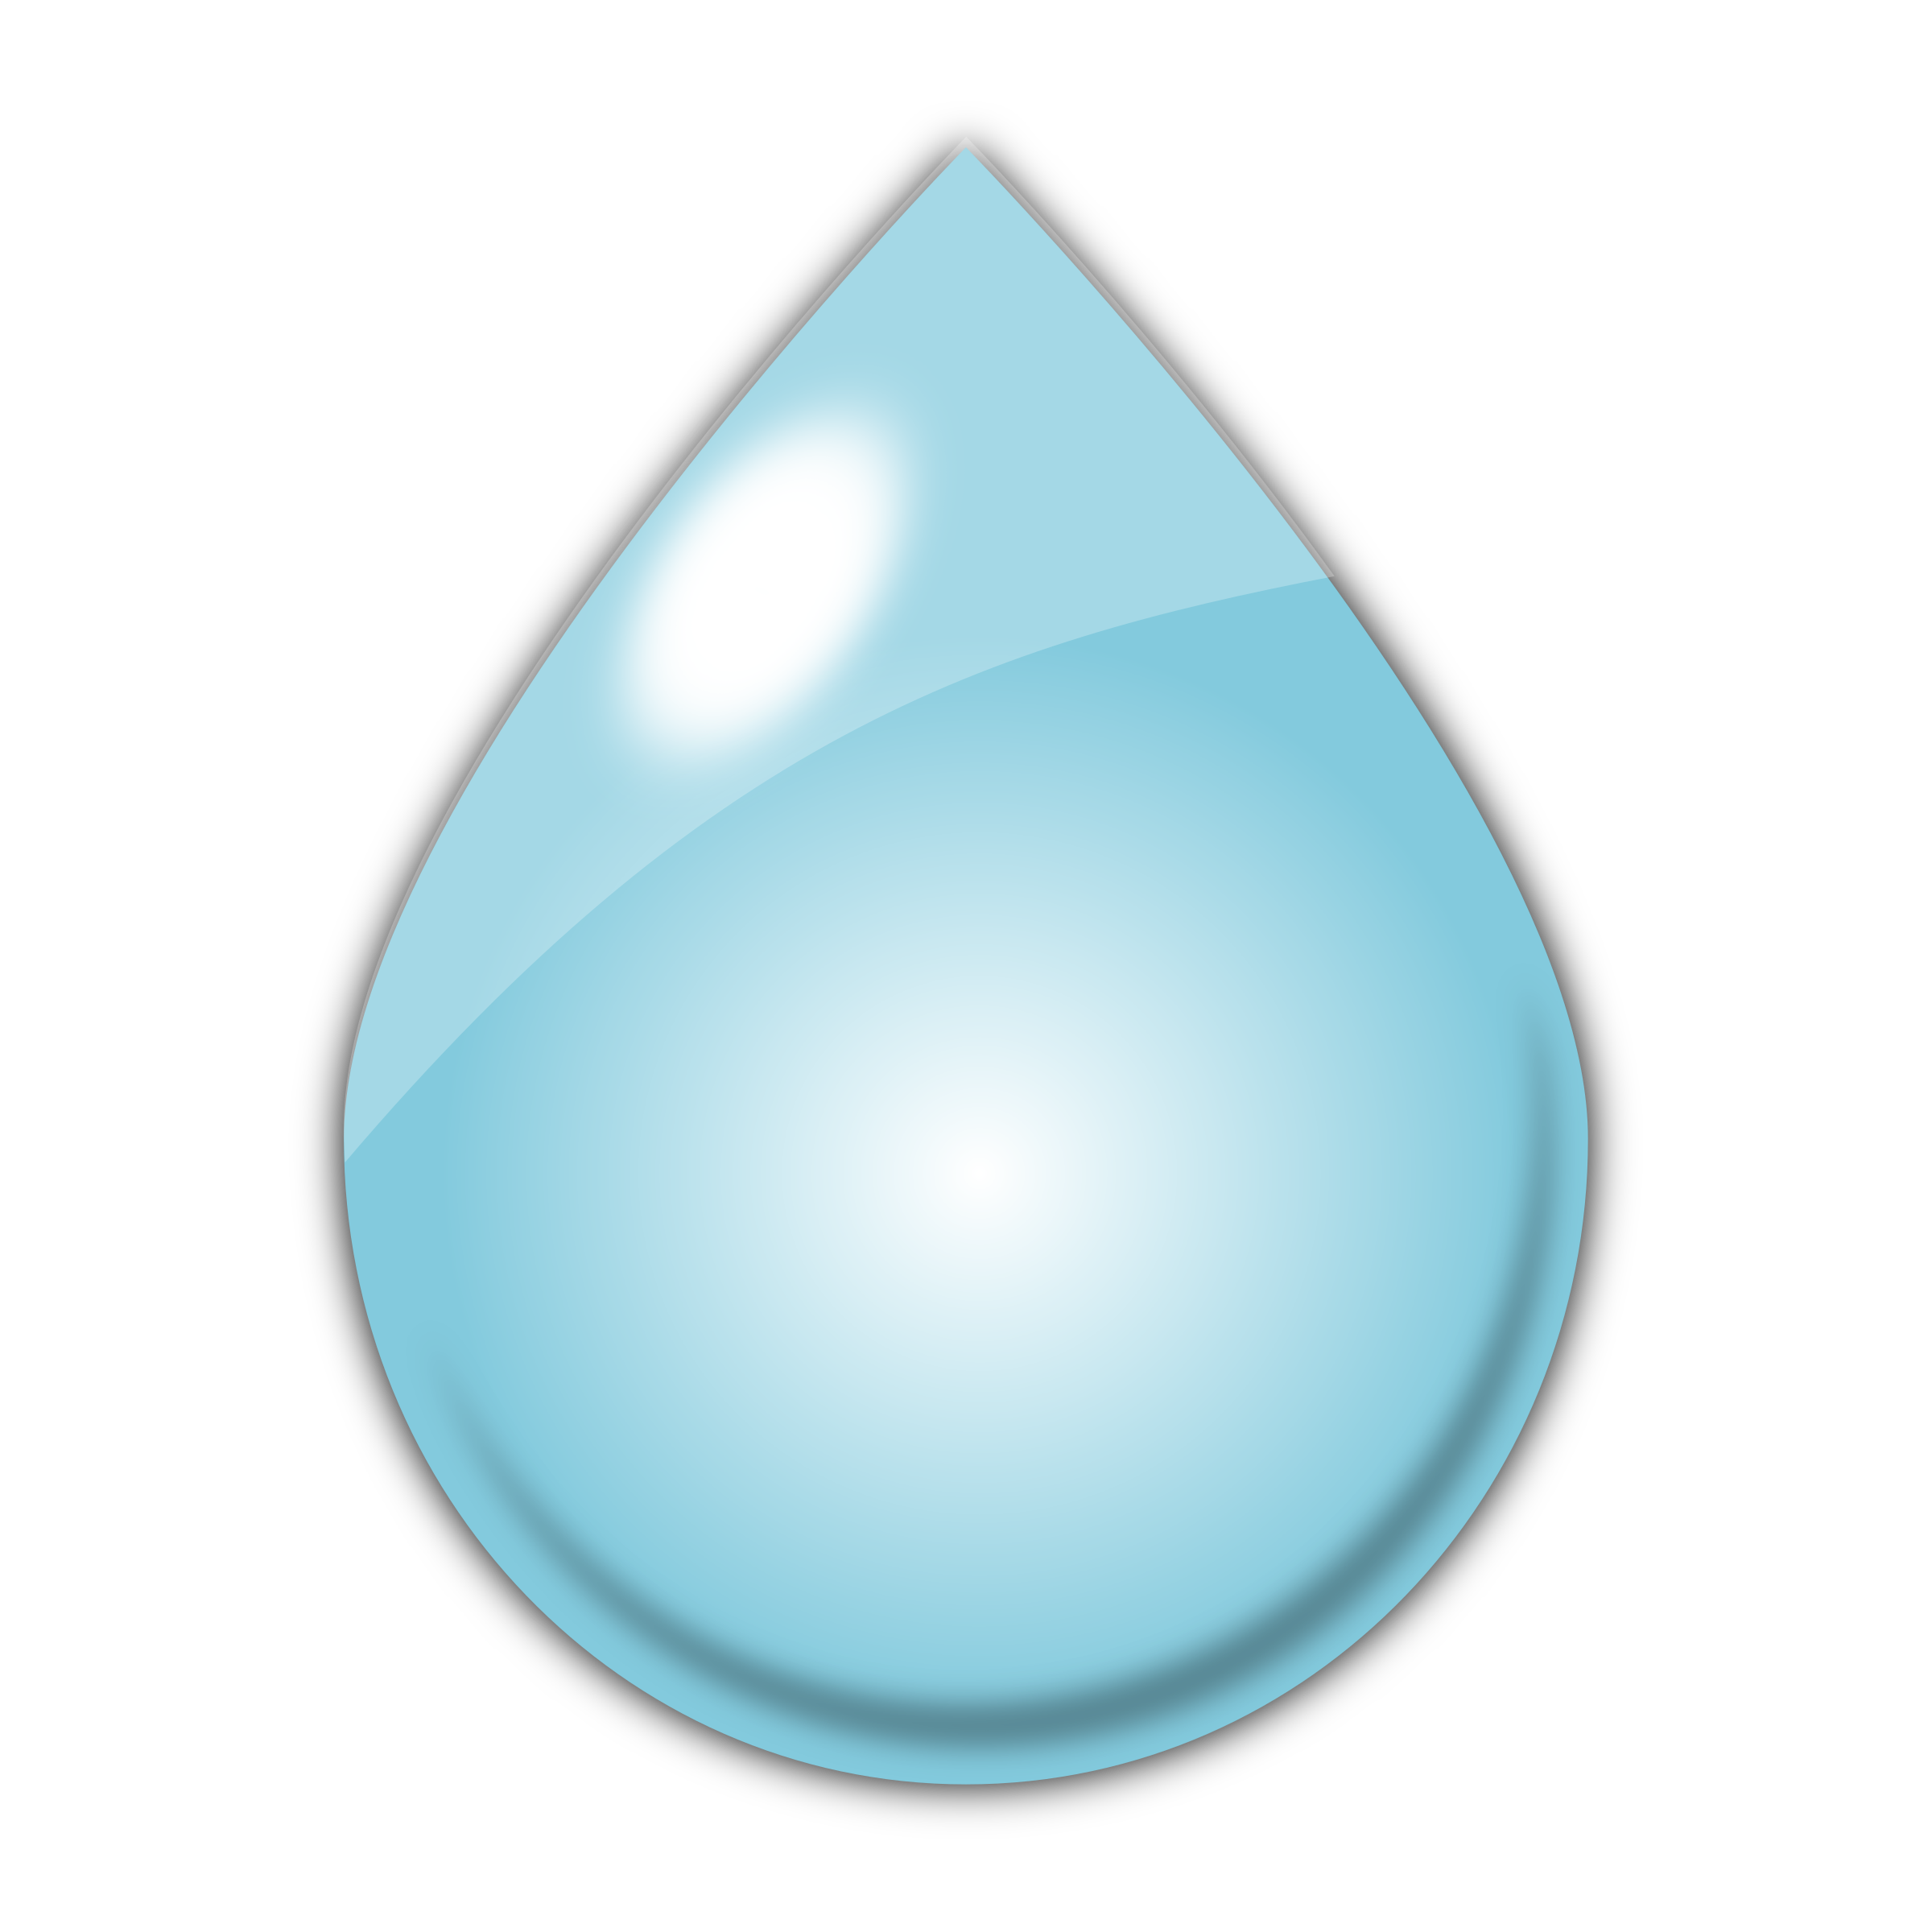 Drawings of raindrops clipart